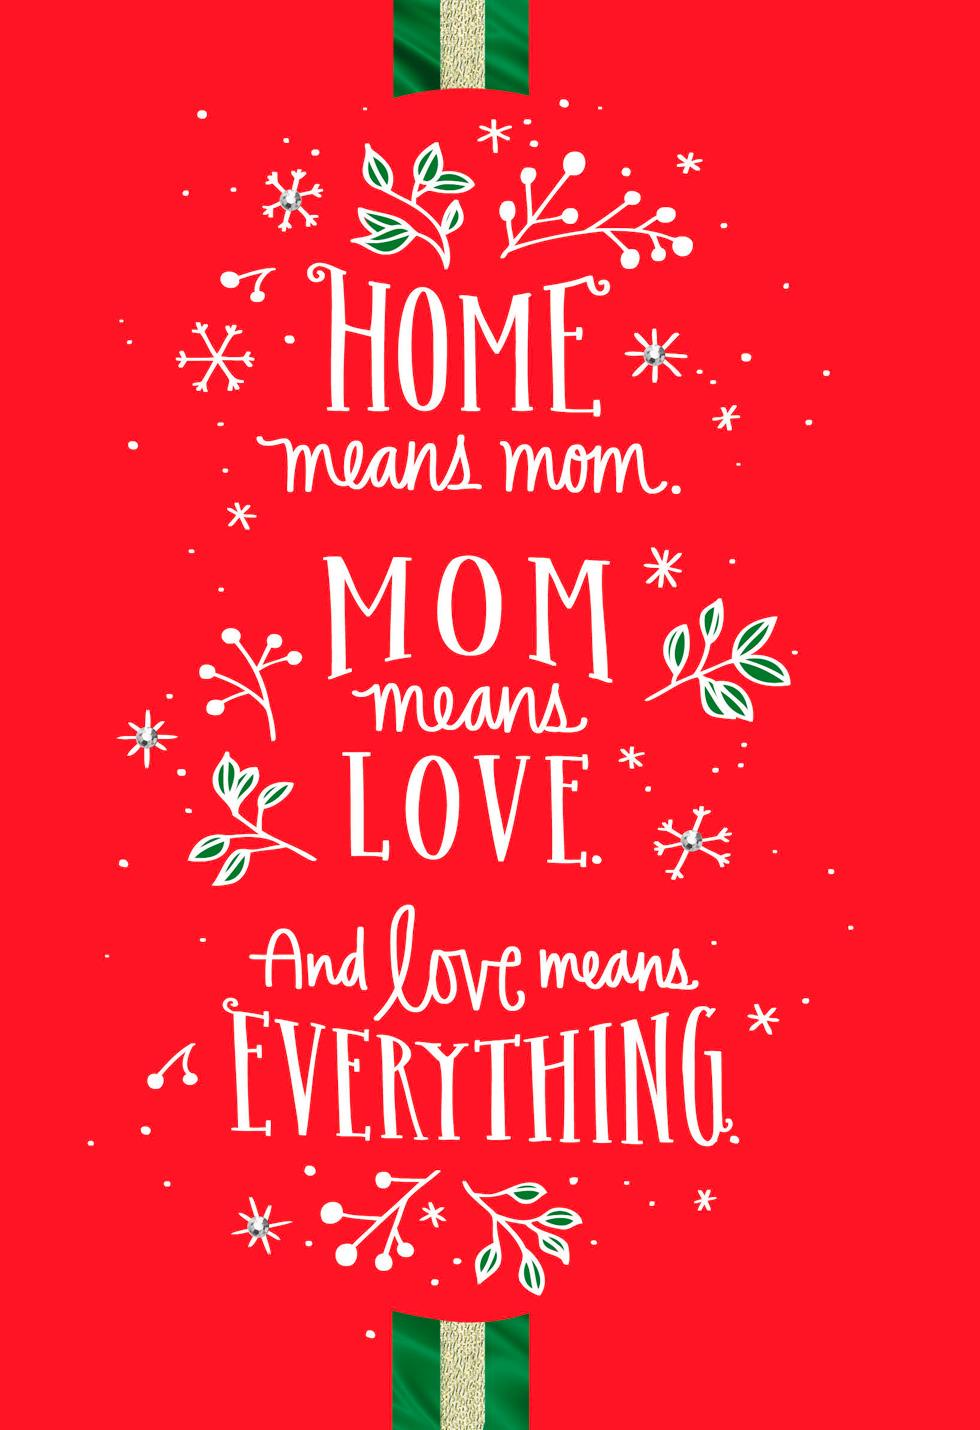 Love Means Everything Christmas Card For Mom Greeting